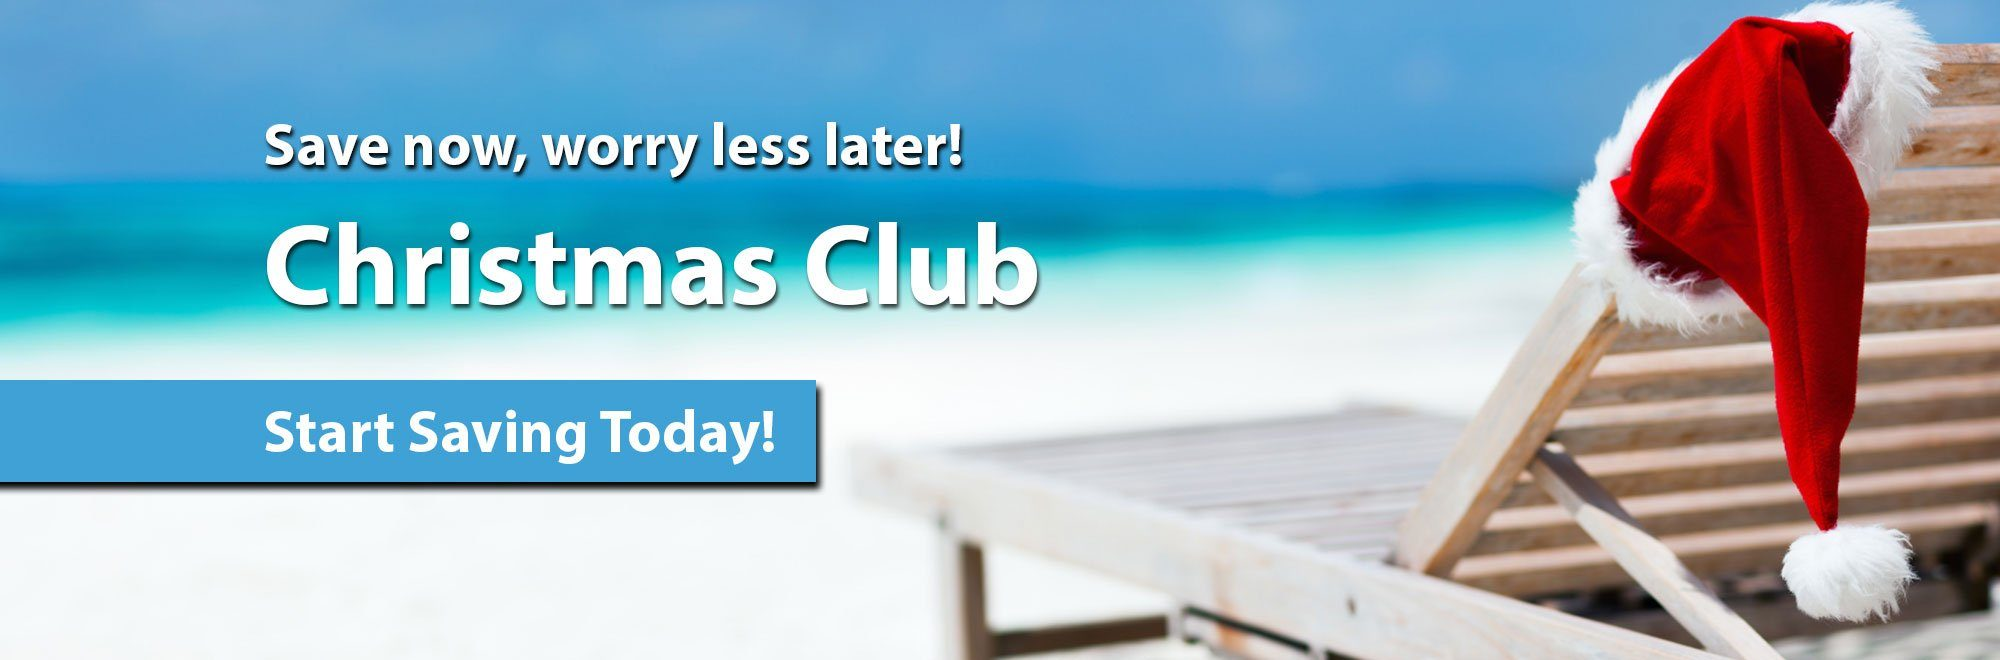 Save now, worry less later. Christmas Club. Start Saving Today!